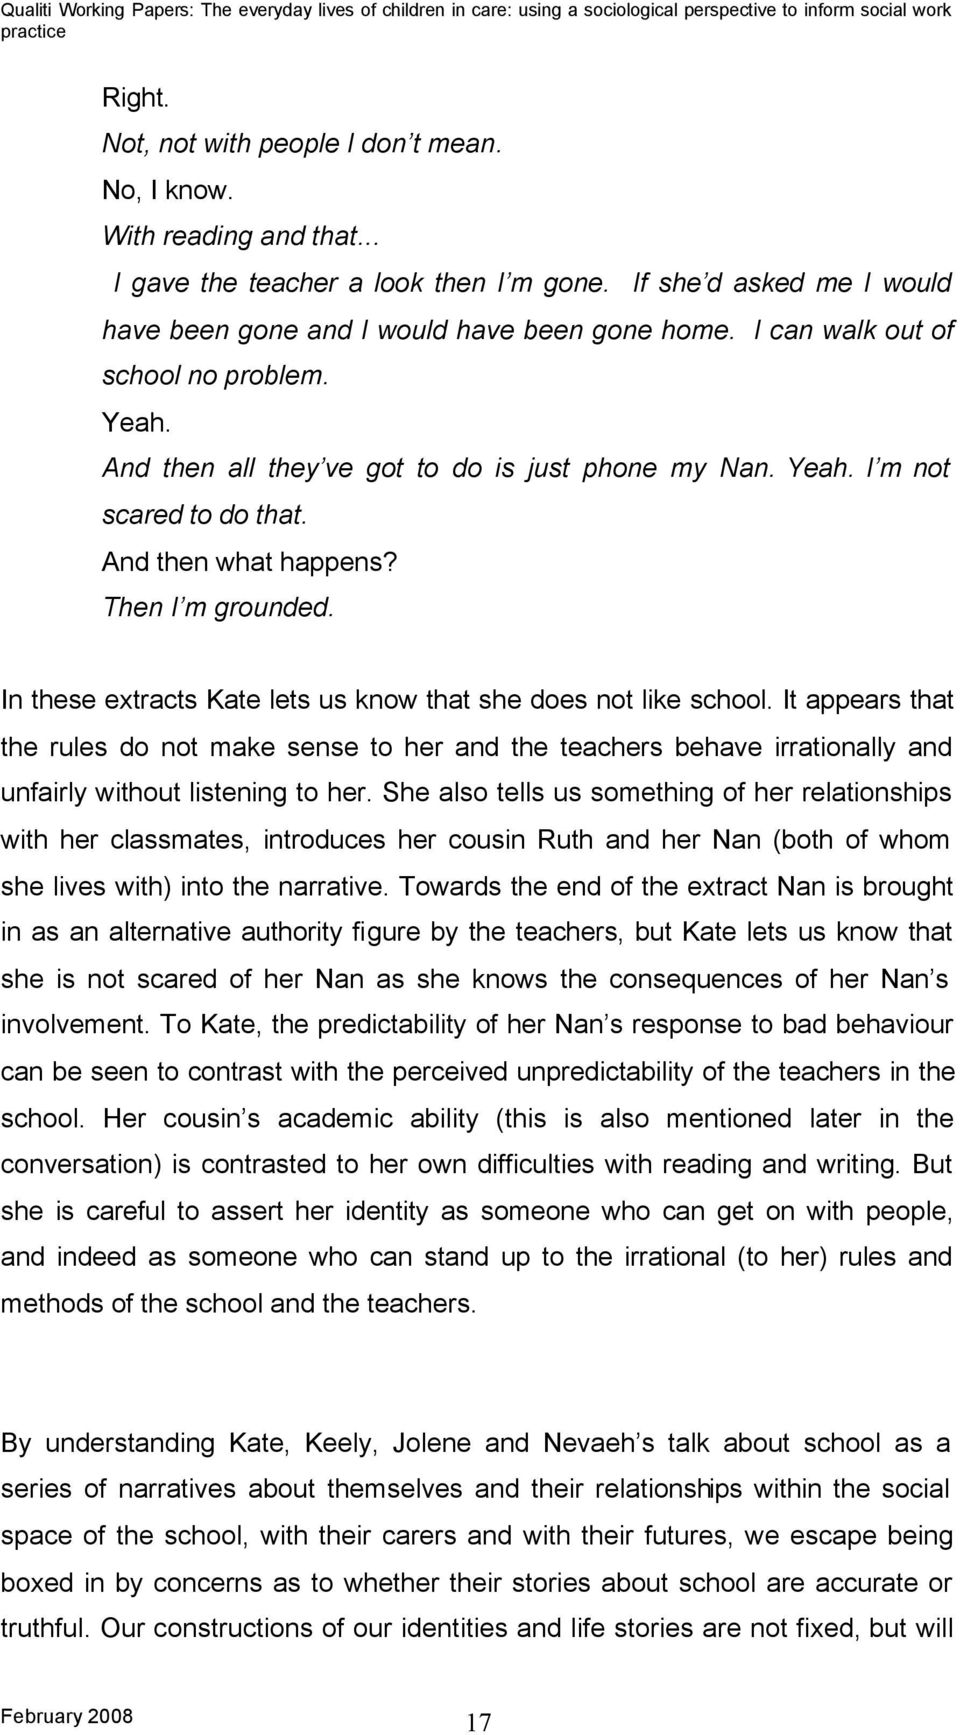 In these extracts Kate lets us know that she does not like school. It appears that the rules do not make sense to her and the teachers behave irrationally and unfairly without listening to her.